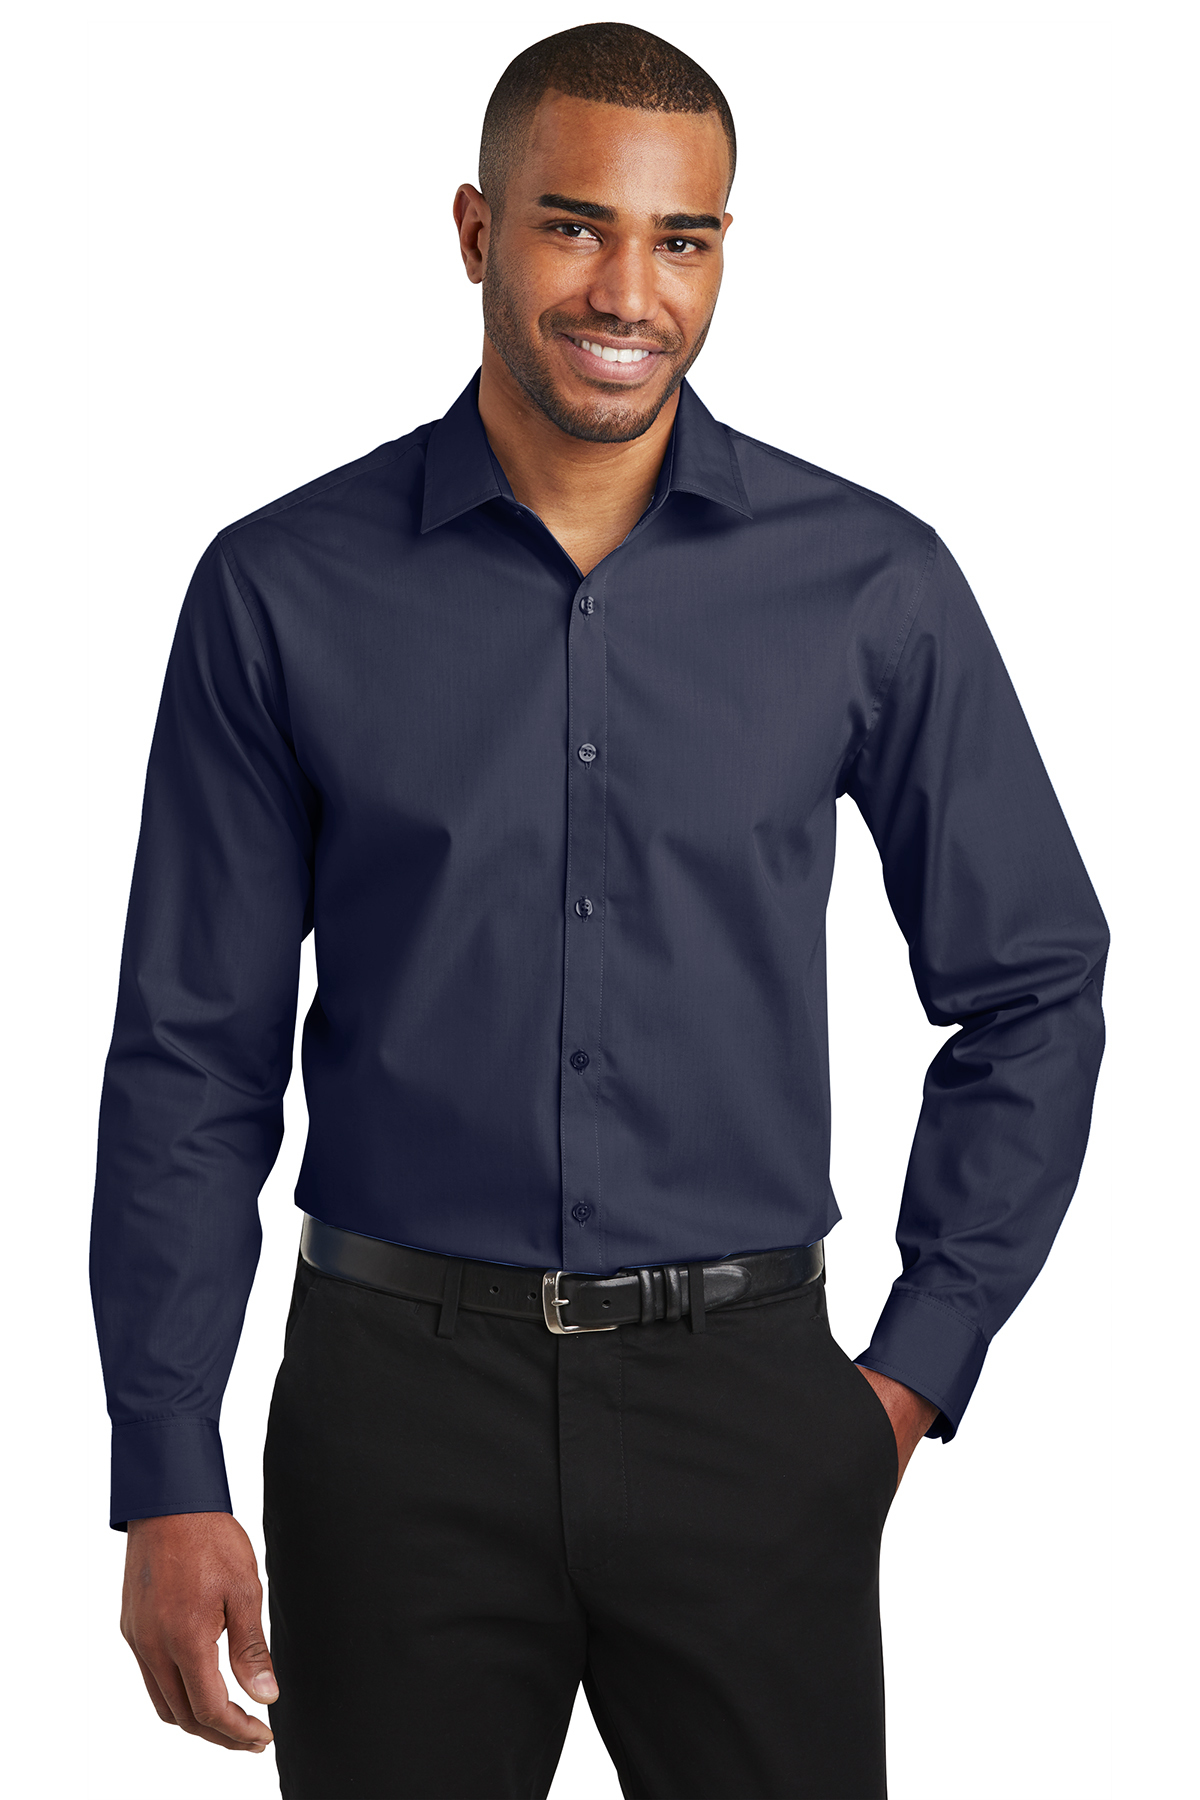 Port Authority W103 - Men's Slim Fit Carefree Poplin Shirt